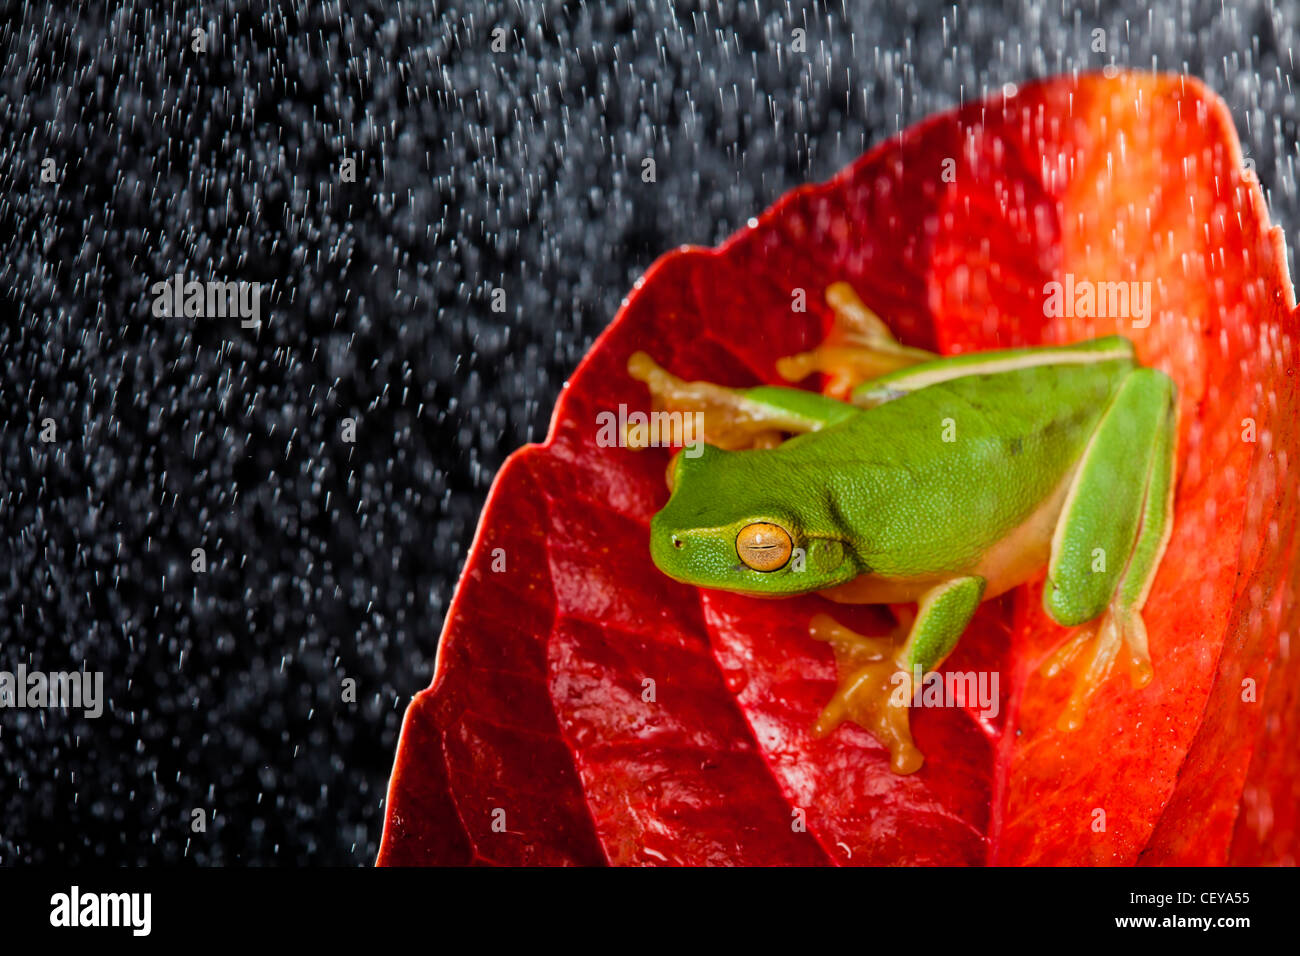 Little green tree frog sitting on red leaf in rain - Stock Image